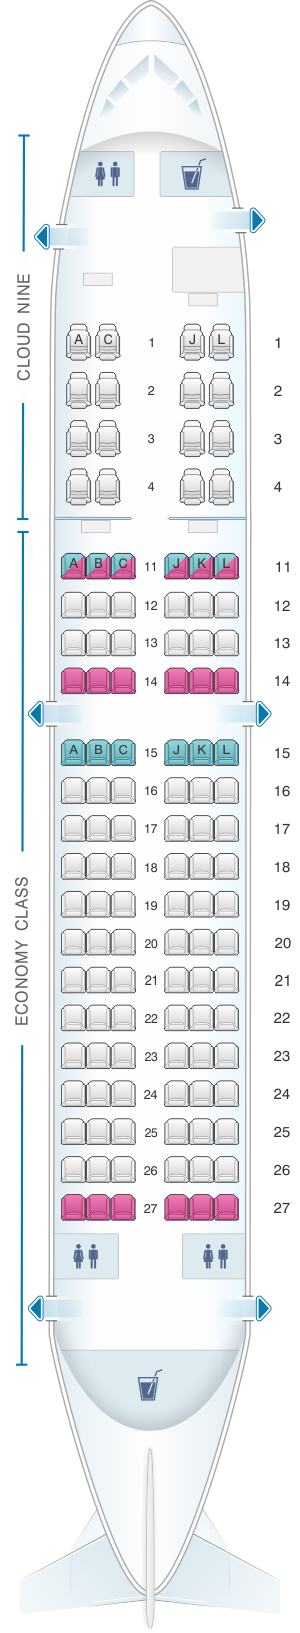 Seat map for Ethiopian Boeing B737 700